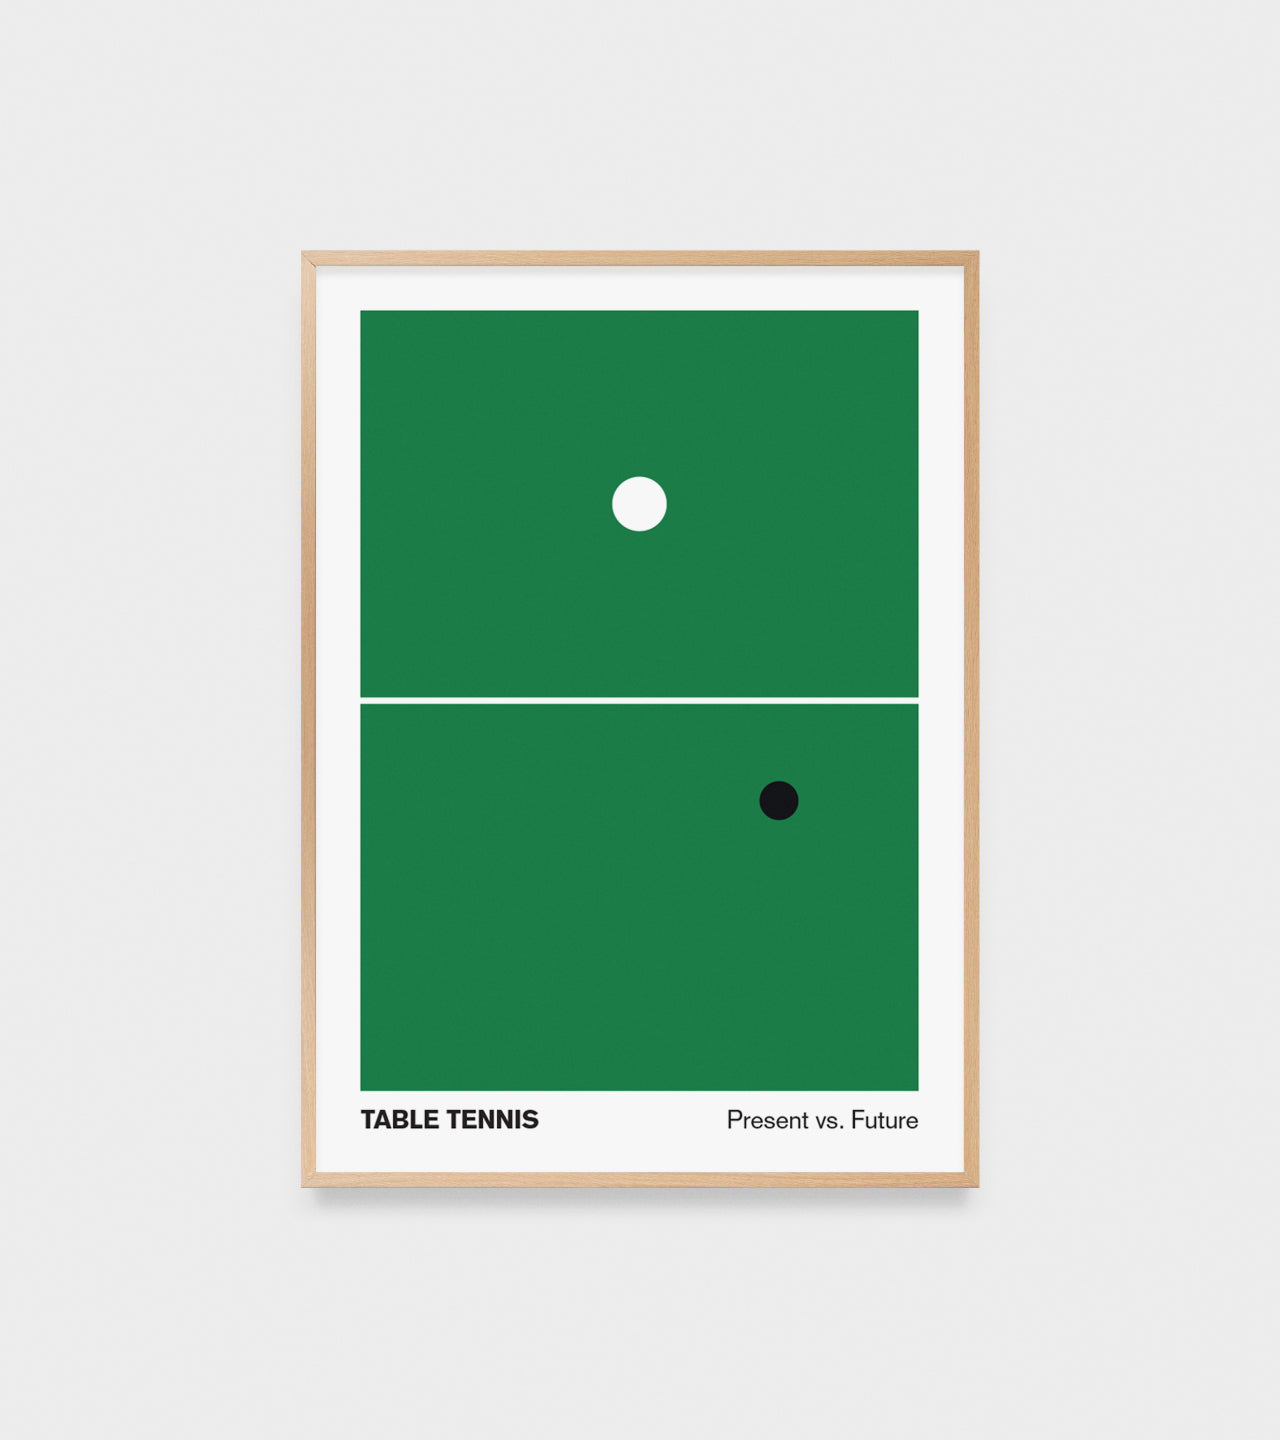 Table Tennis - Present vs. Future